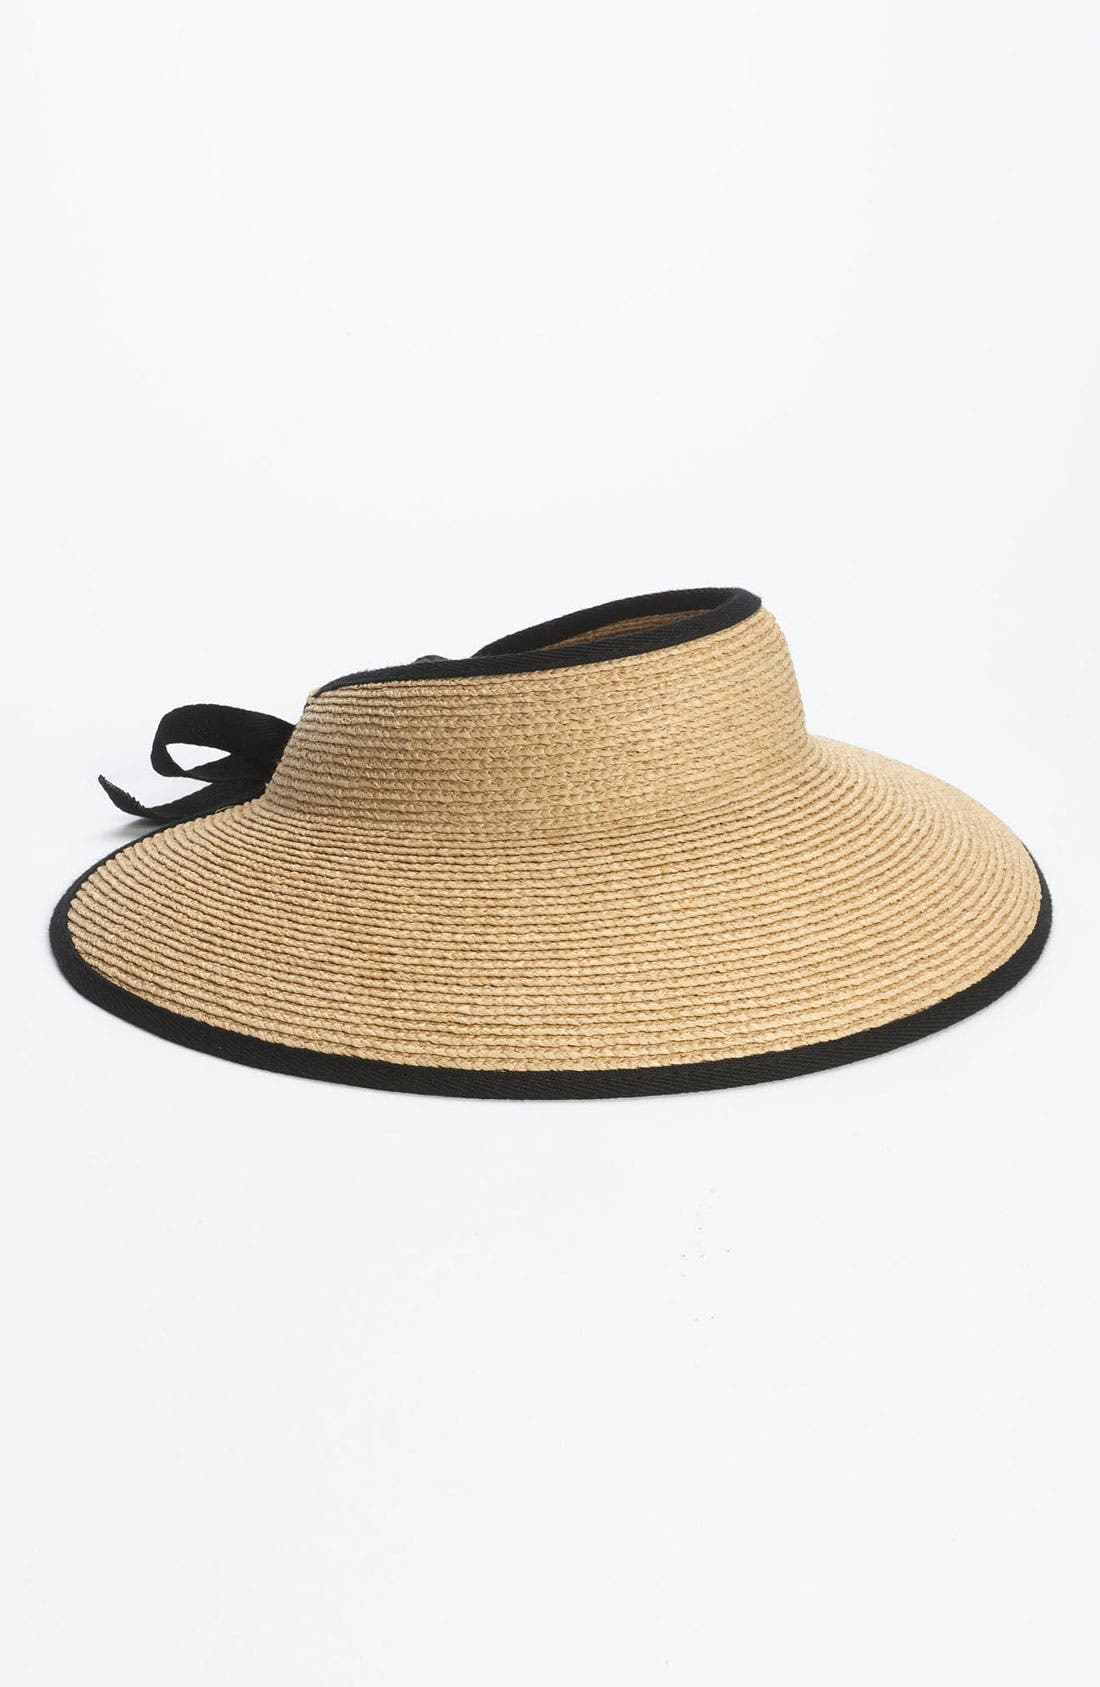 'Mita' Packable Raffia Visor,                             Main thumbnail 1, color,                             NATURAL/ MIDNIGHT